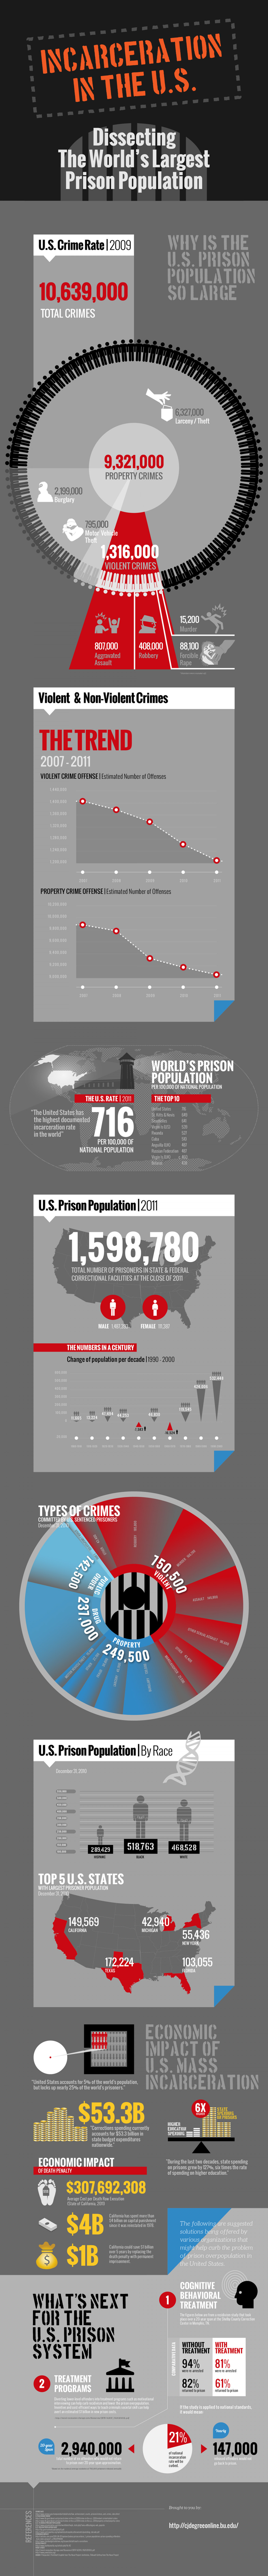 Incarceration in the US: Dissecting the World's Largest Prison Population Infographic